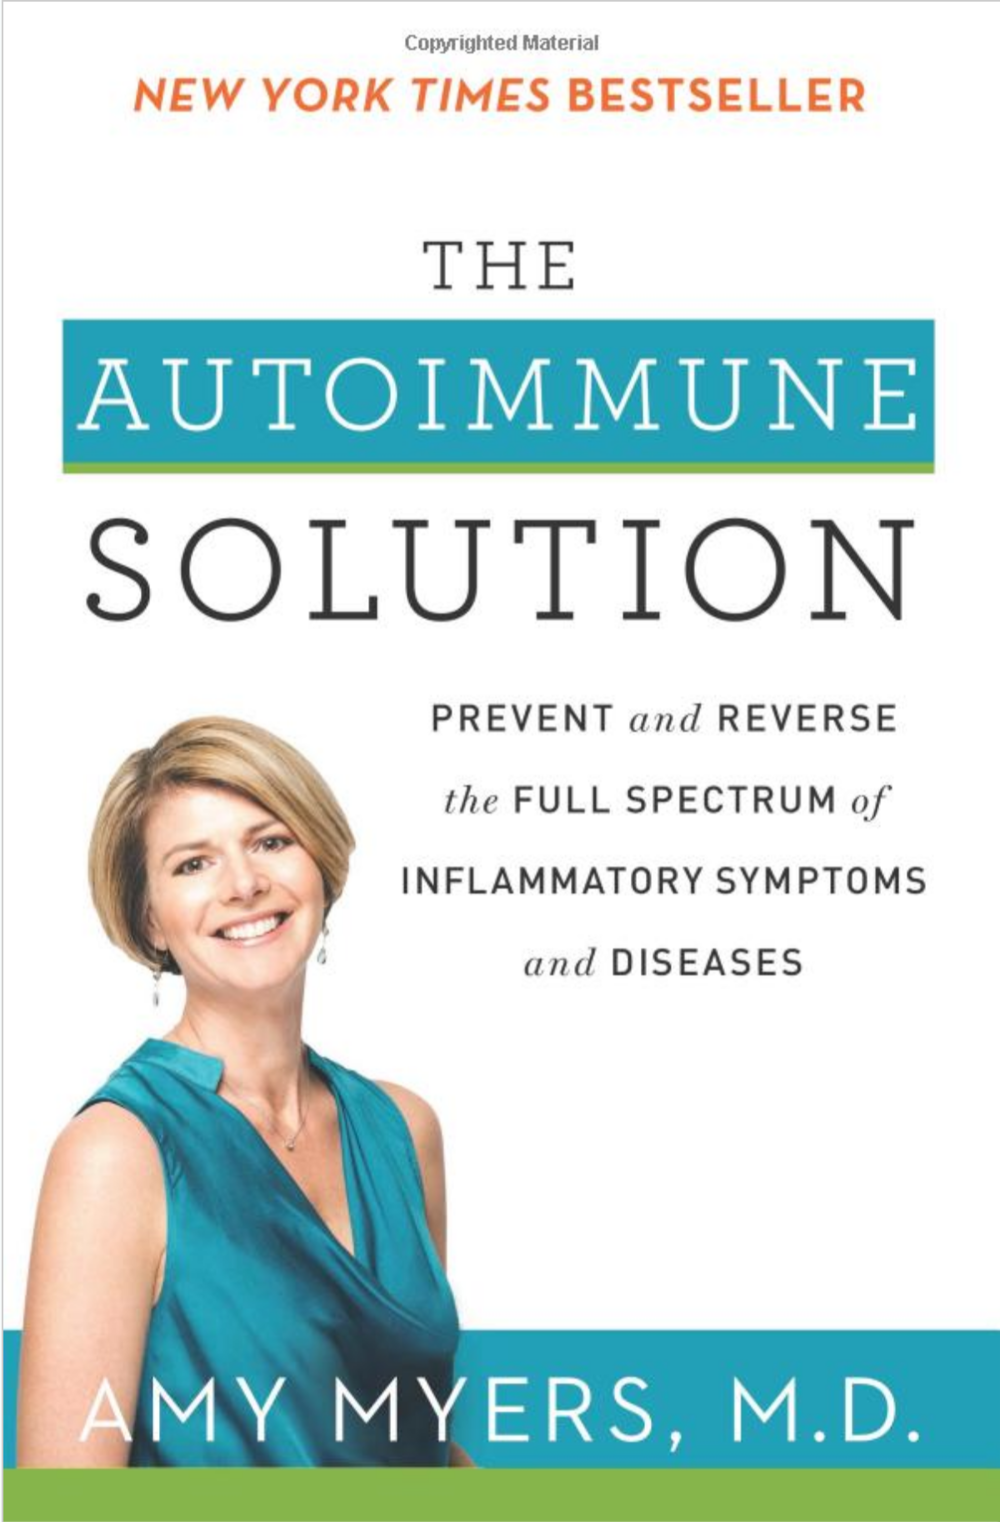 The Autoimmune Solution:  Dr. Amy Meyers